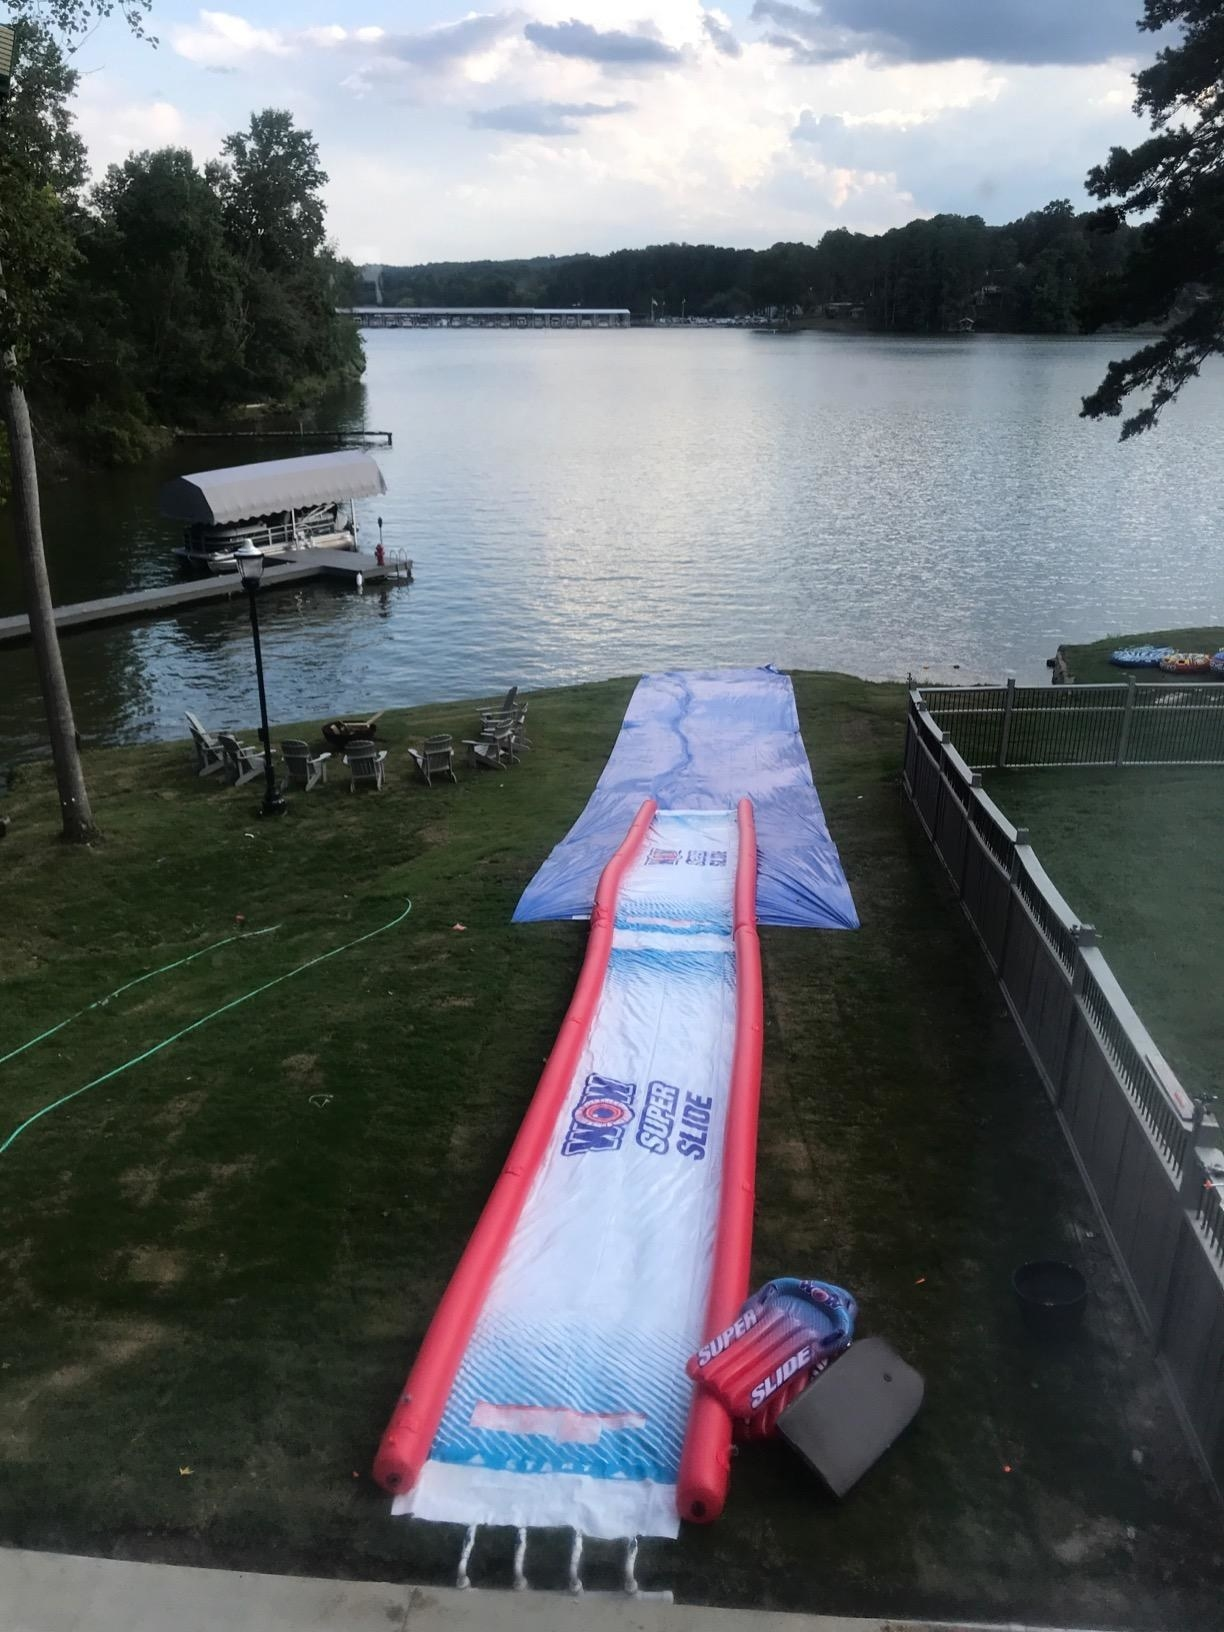 A super slide set up right in front of a lake.